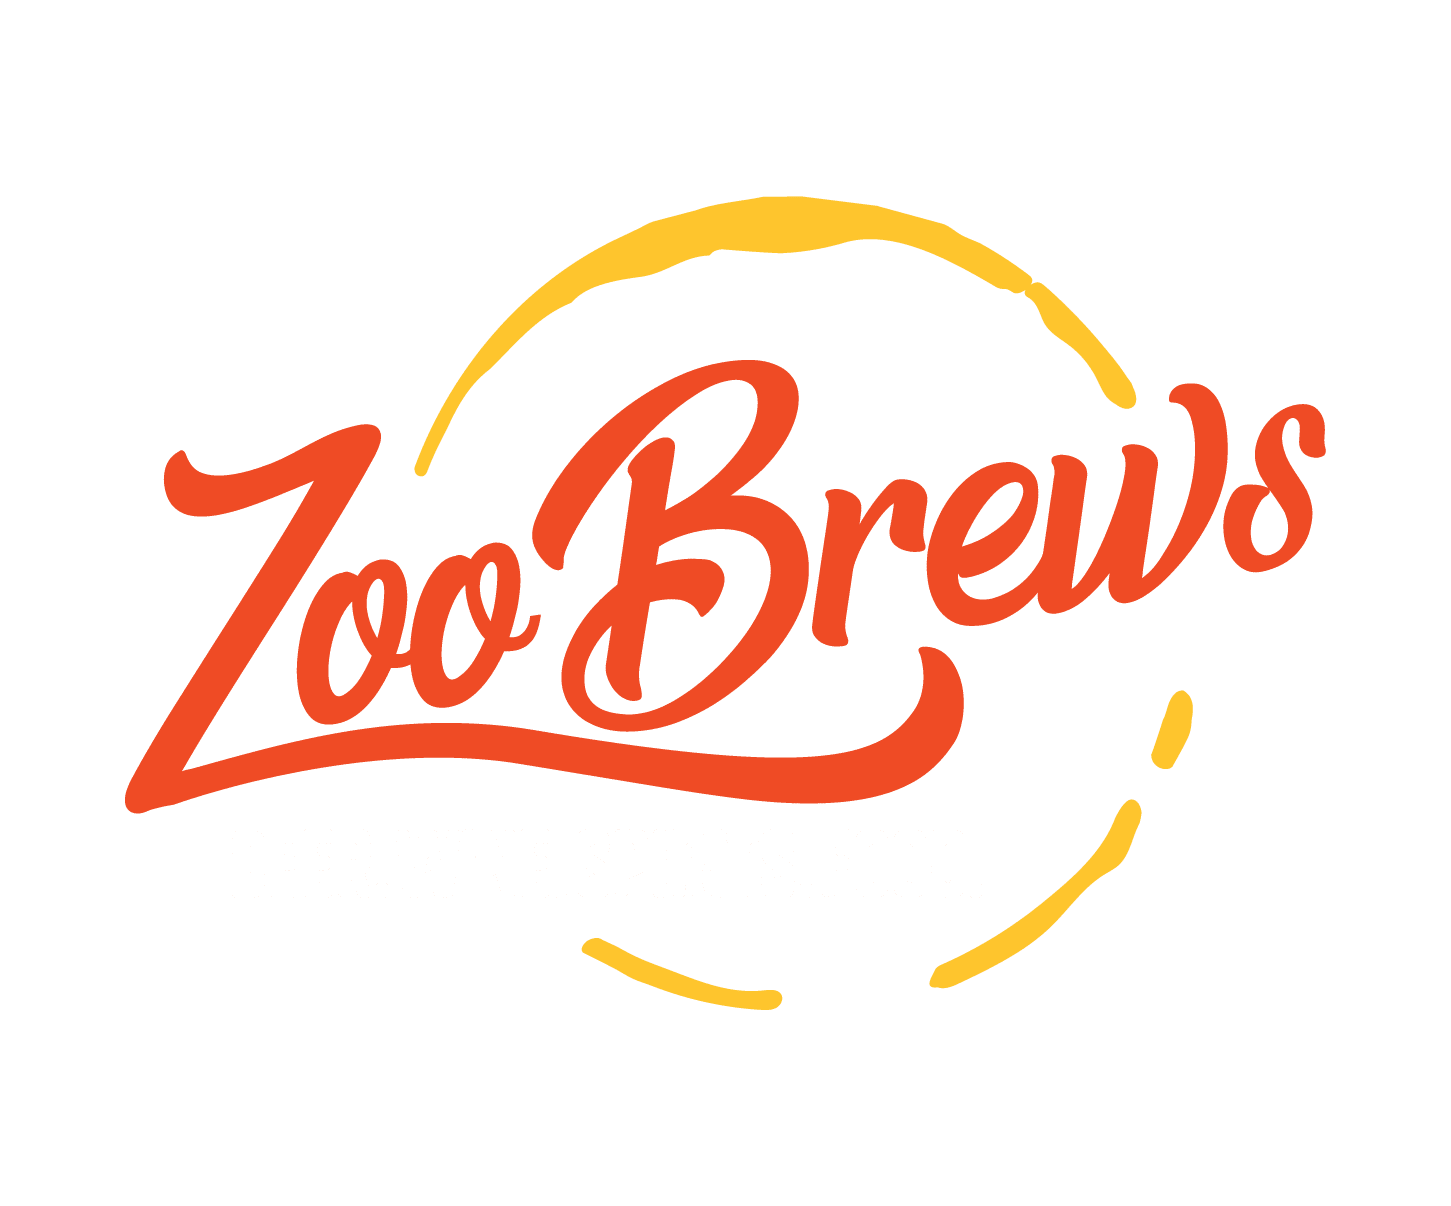 ZooBrews - ZooTampa at Lowry Park